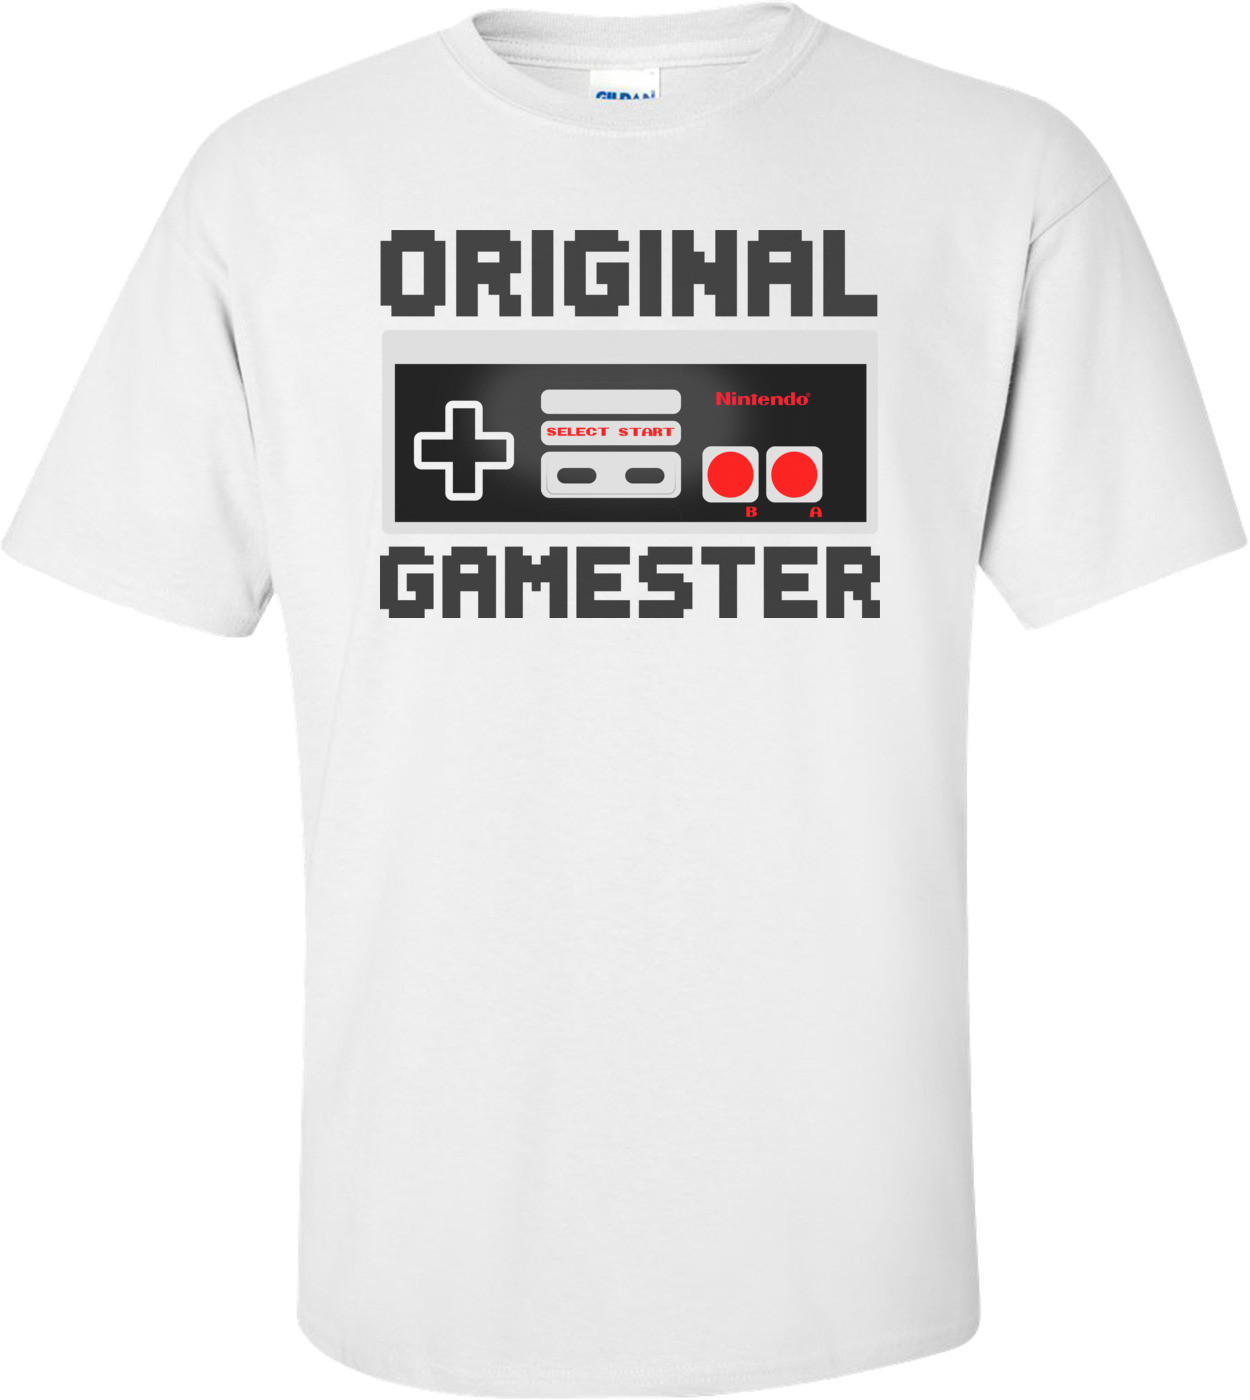 Original Gamester Cool Nintendo Shirt